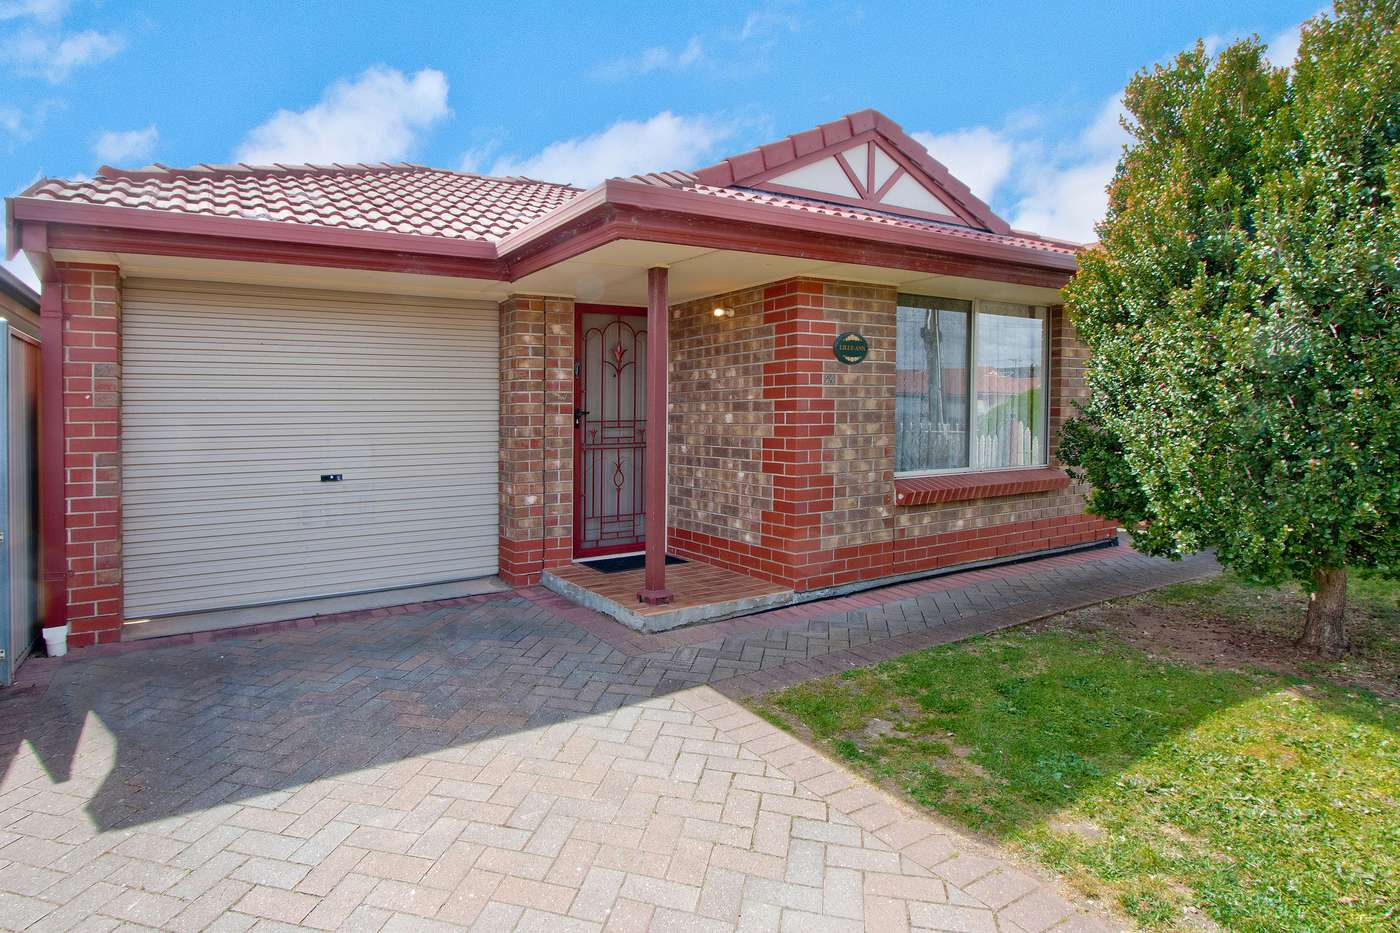 Main view of Homely house listing, 24 Lachlan Street, Ferryden Park, SA 5010